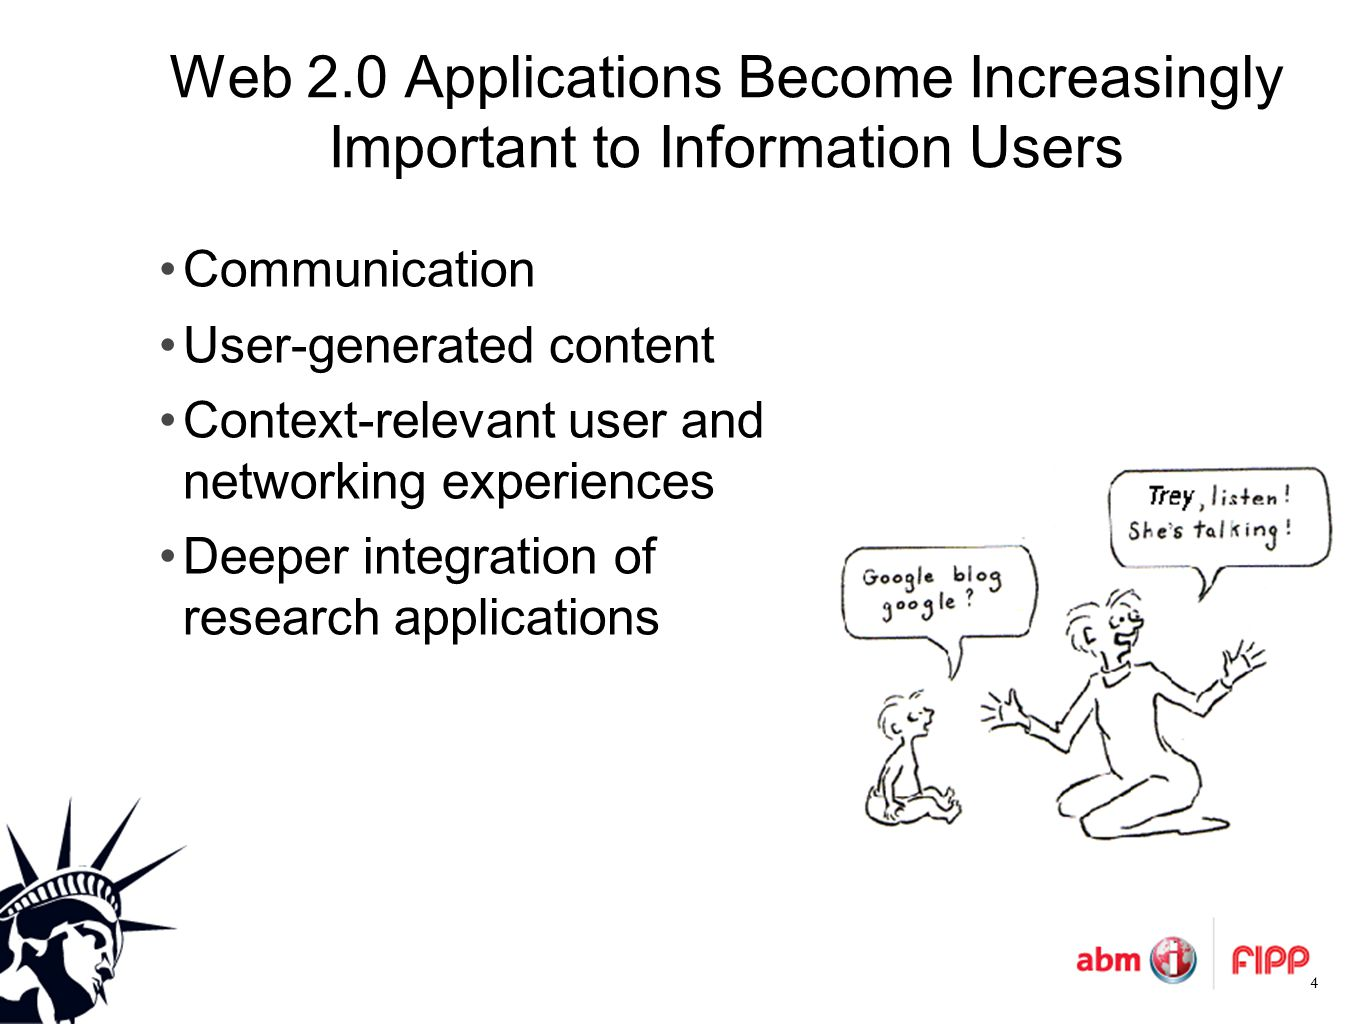 Web 2.0 Applications Become Increasingly Important to Information Users Communication User-generated content Context-relevant user and networking experiences Deeper integration of research applications 4